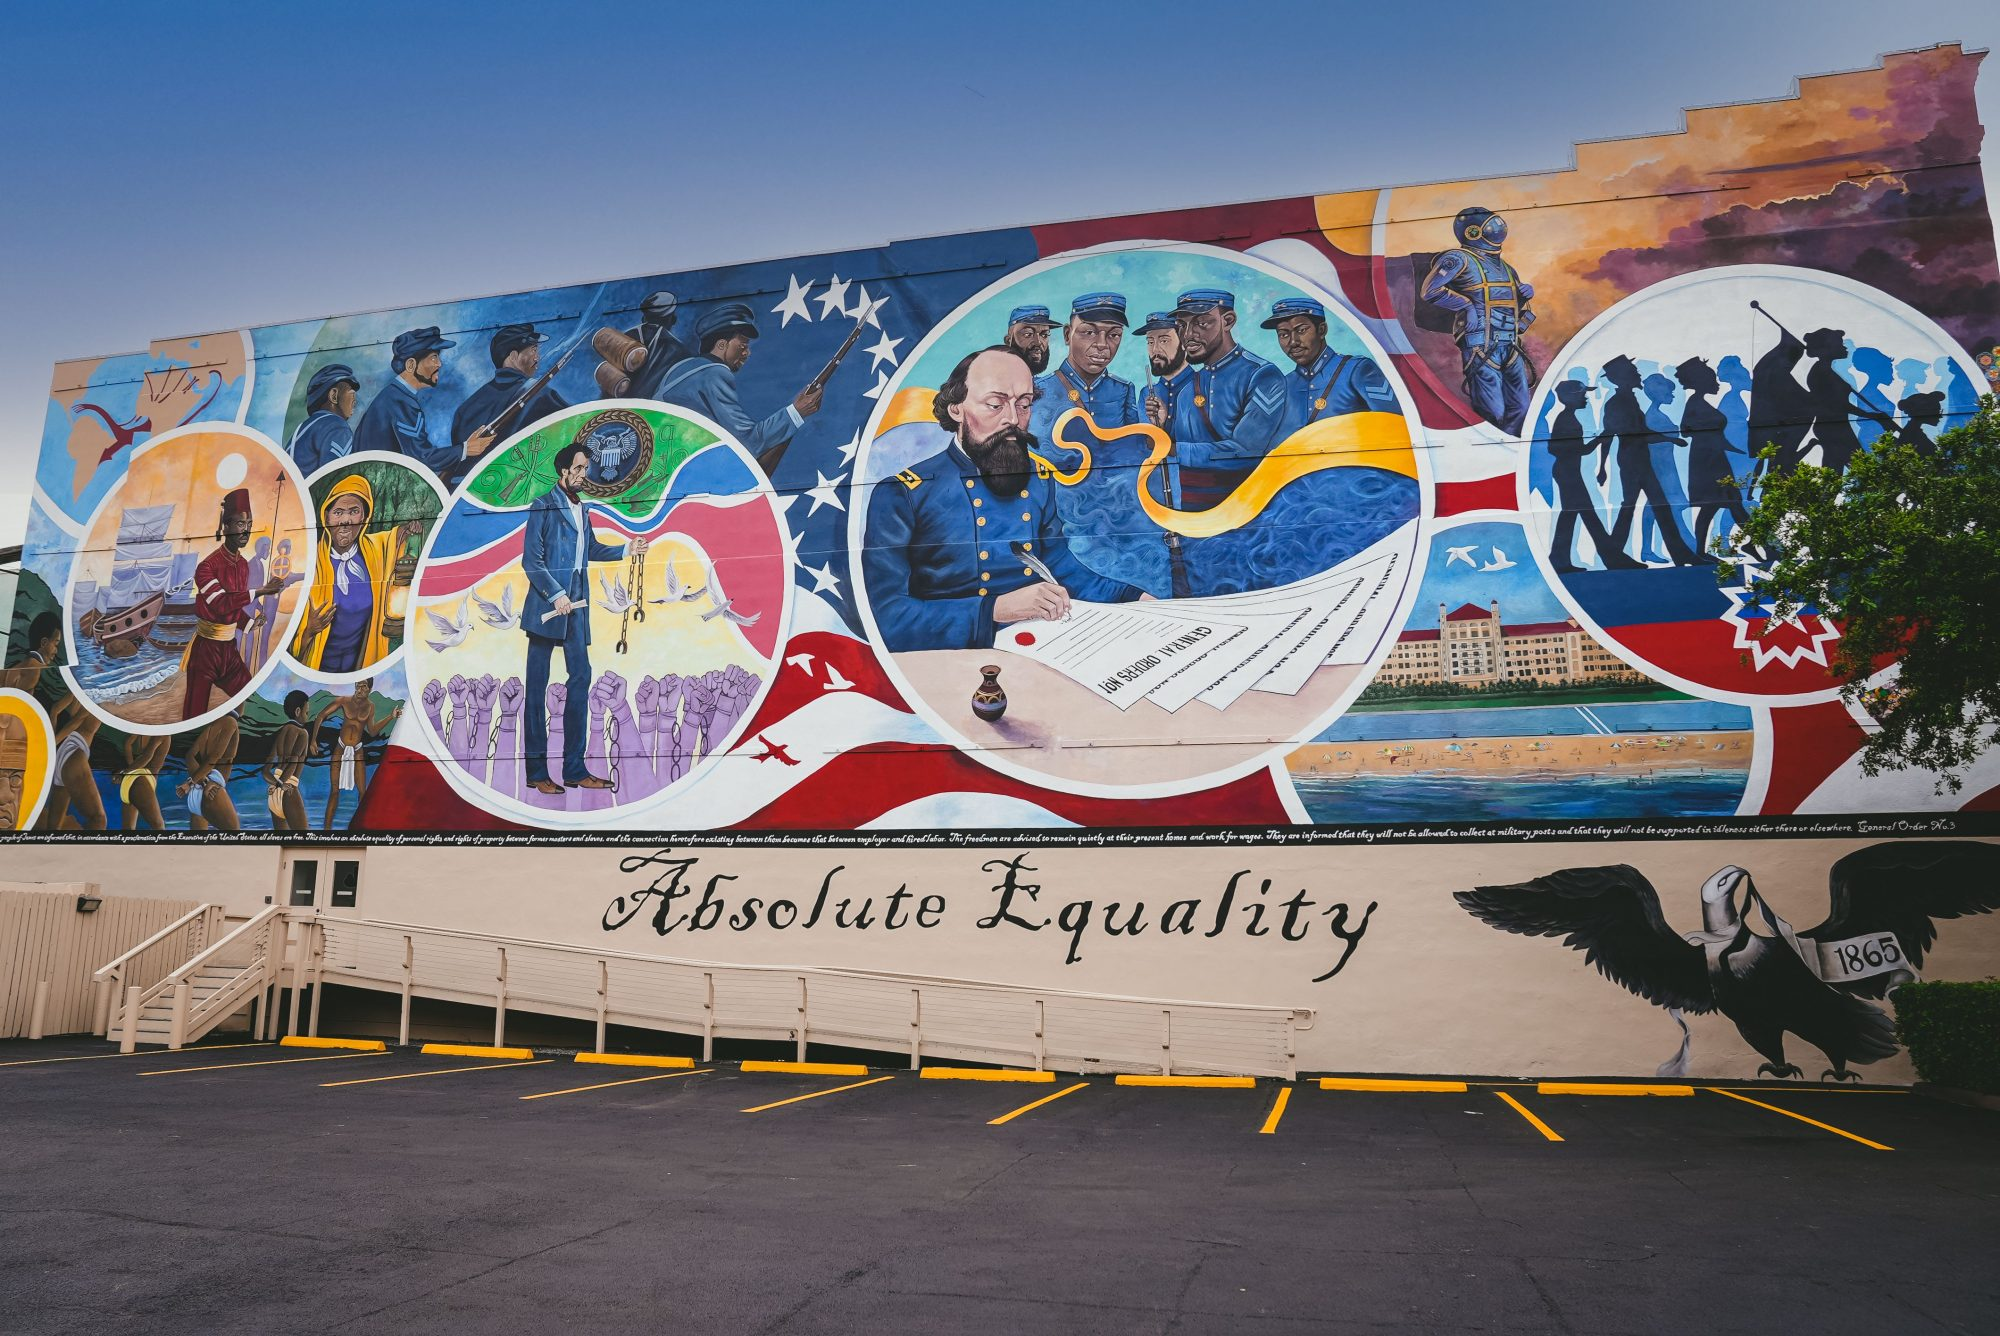 Galveston Juneteenth Absolute Equality Mural